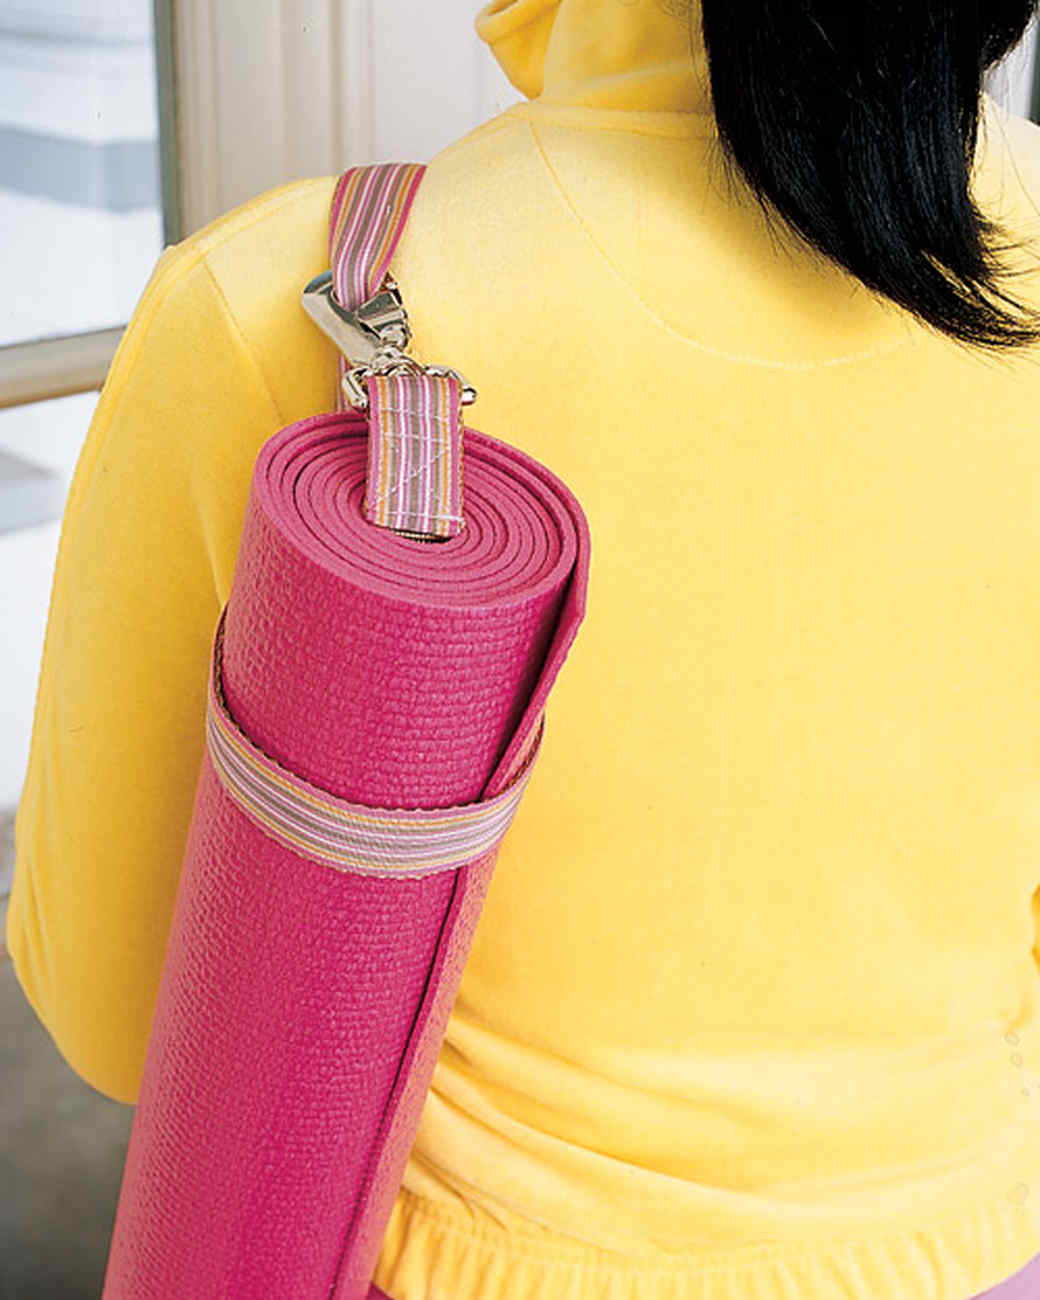 Totable Yoga Mat